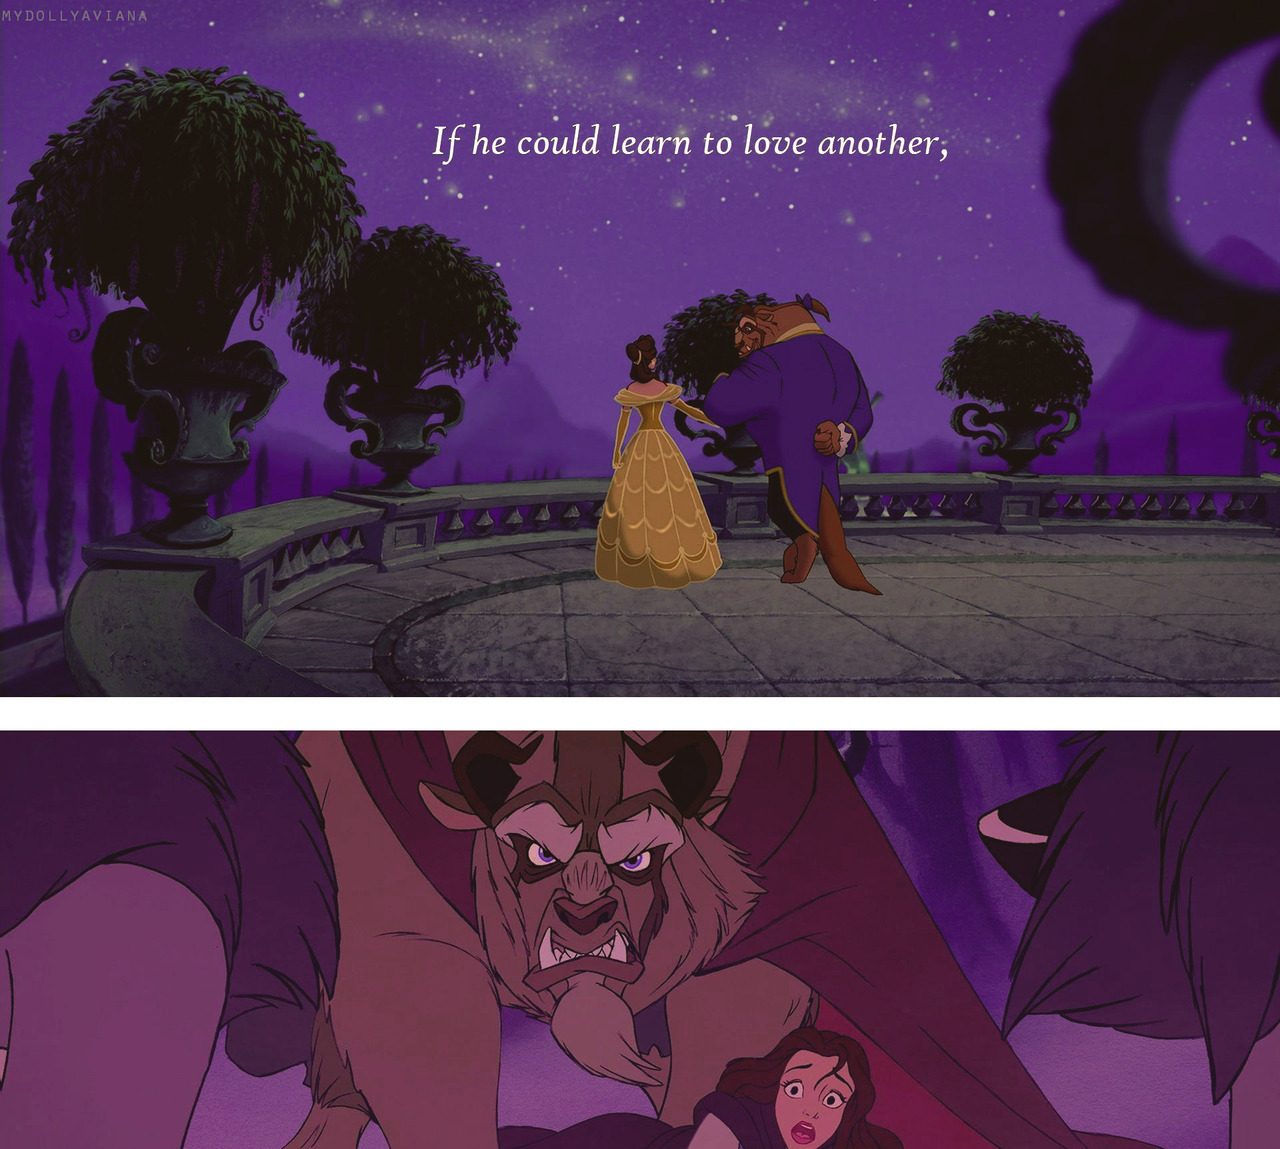 Disney Love Quotes: Beauty And The Beast Love Quotes. QuotesGram